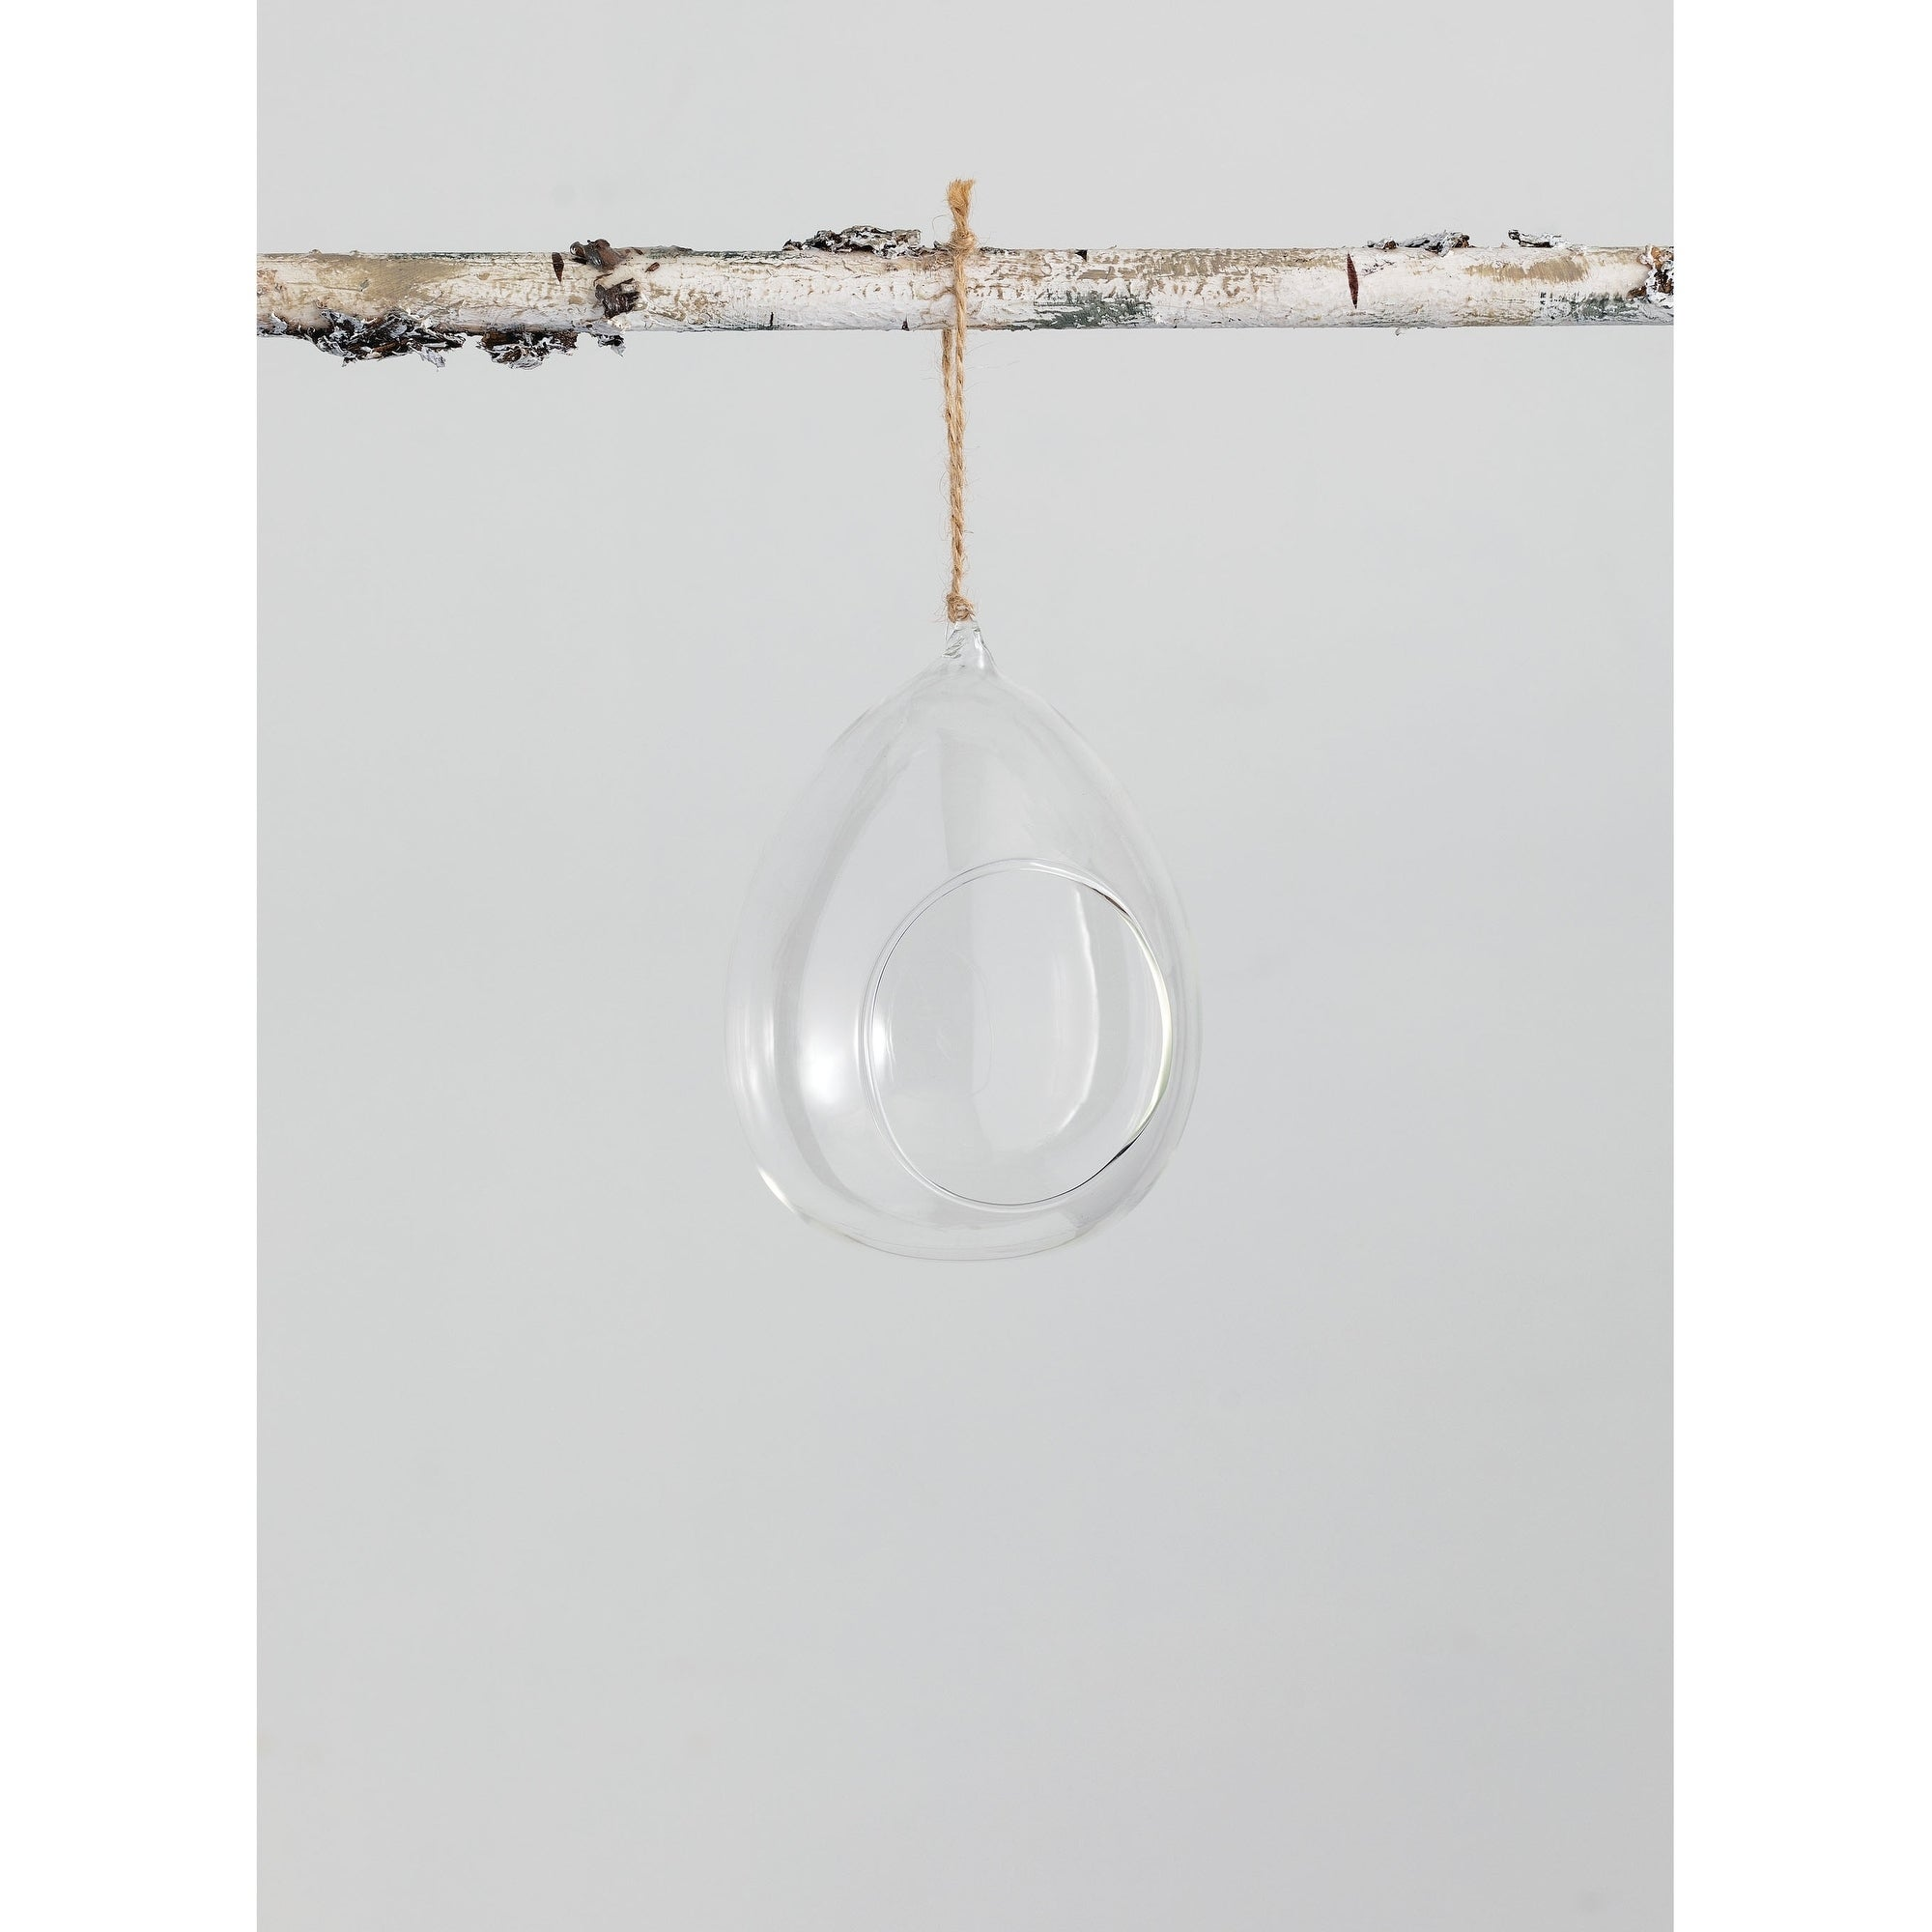 Terrarium Wall Hang In Glass Overstock 30705685